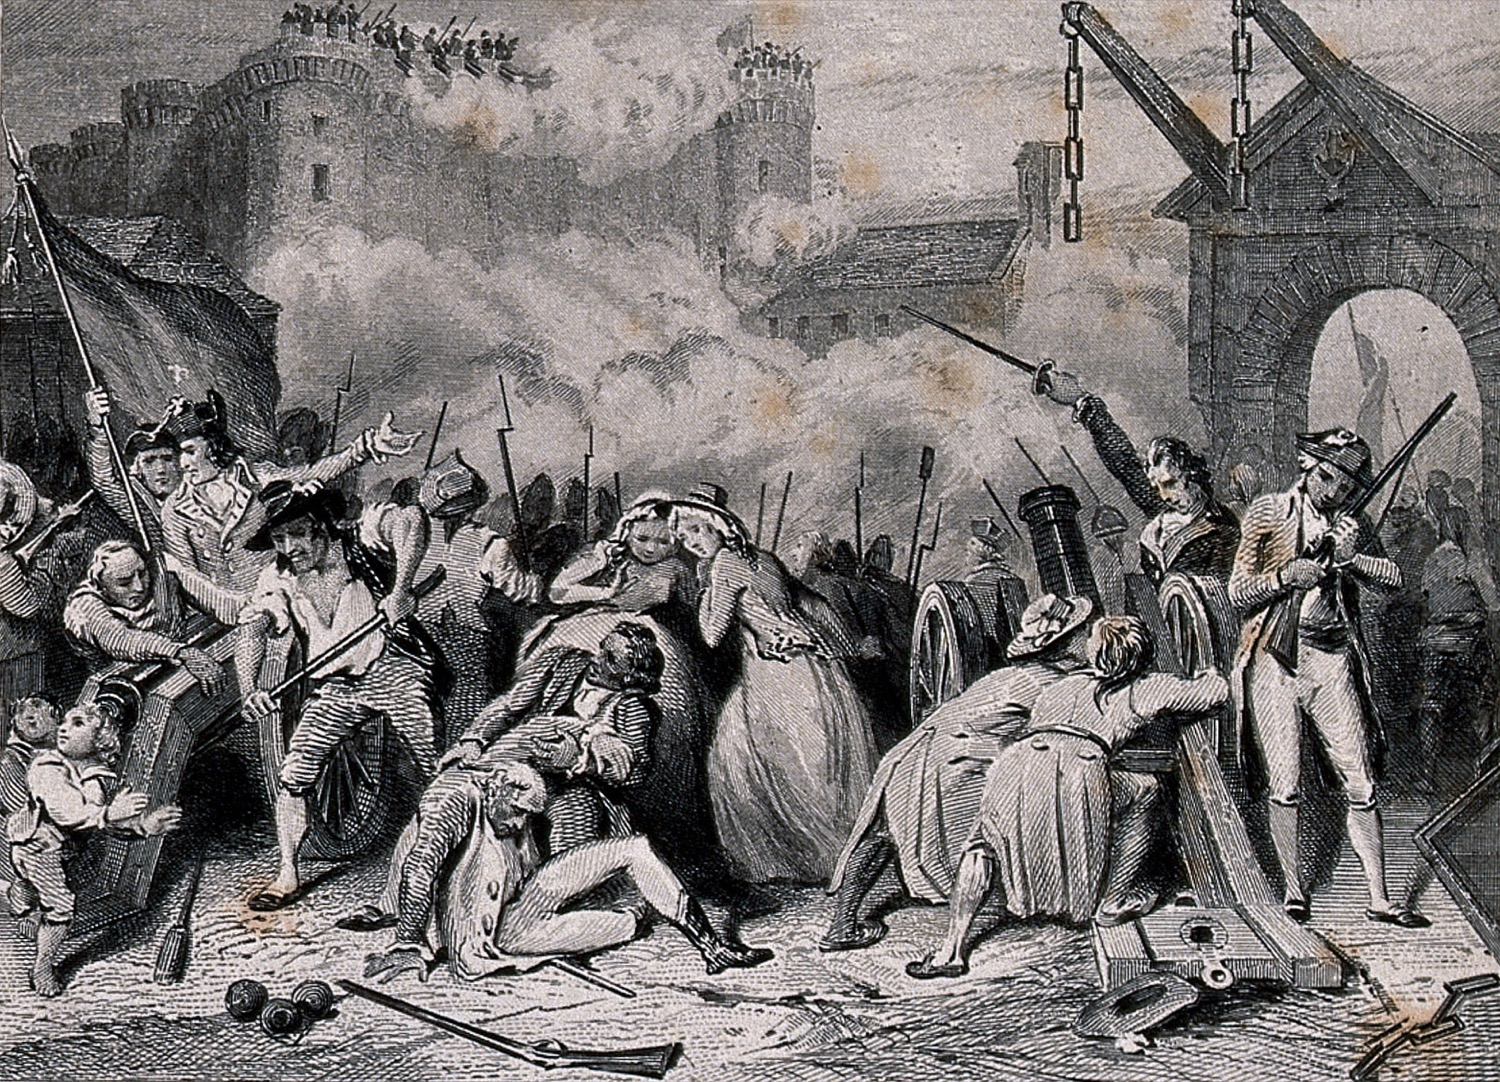 a black and white etching of a battle scene with a large fort in the background (bastille) and women and men injured in the front. they are fighting with cannons, guns, and swords